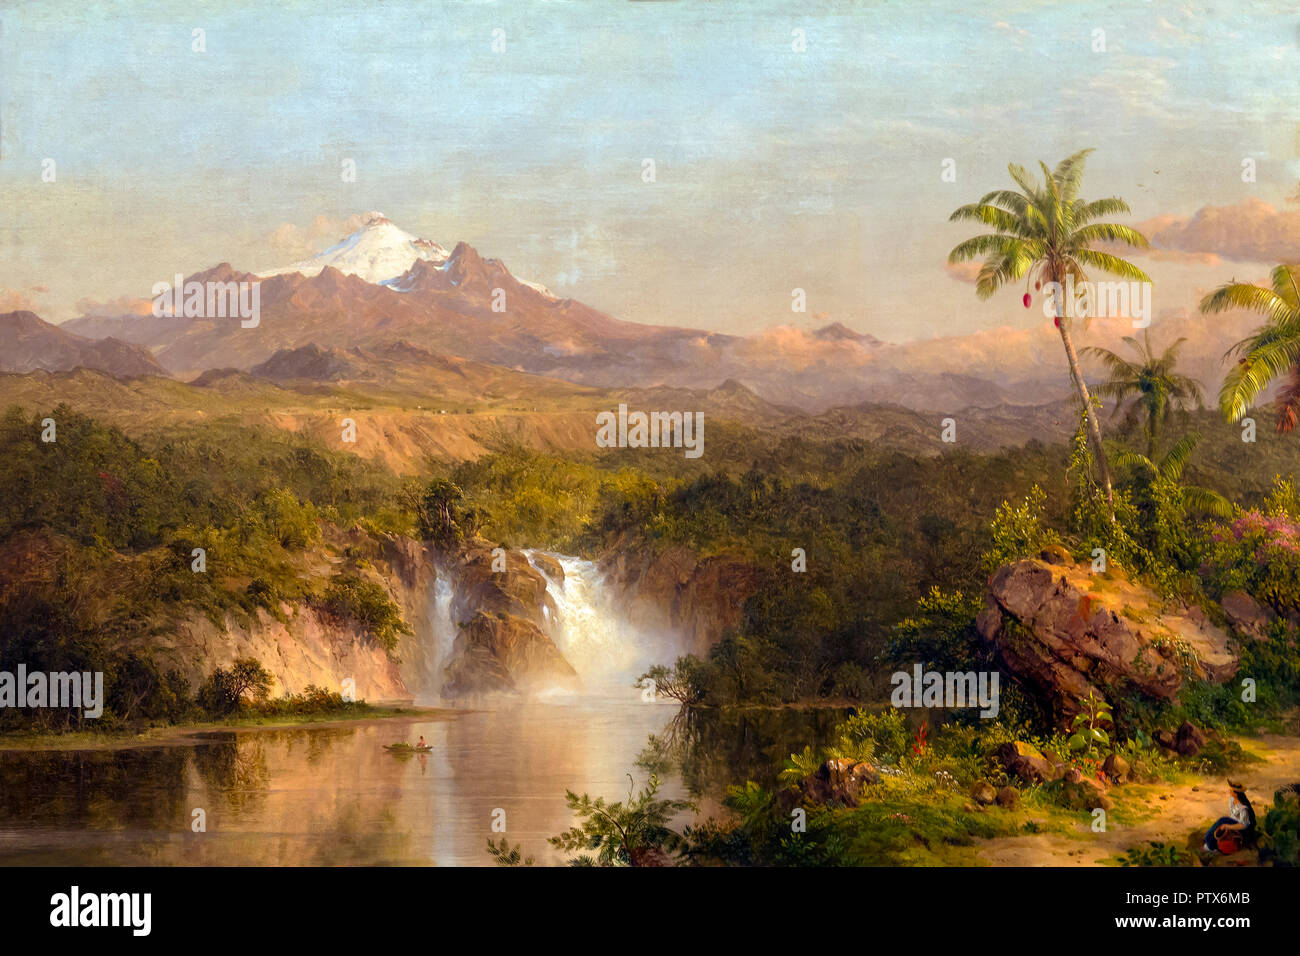 Vista de Cotopaxi, Frederic Edwin Church, 1857, Instituto de Arte de Chicago, Chicago, Illinois, EE.UU., América del Norte Imagen De Stock